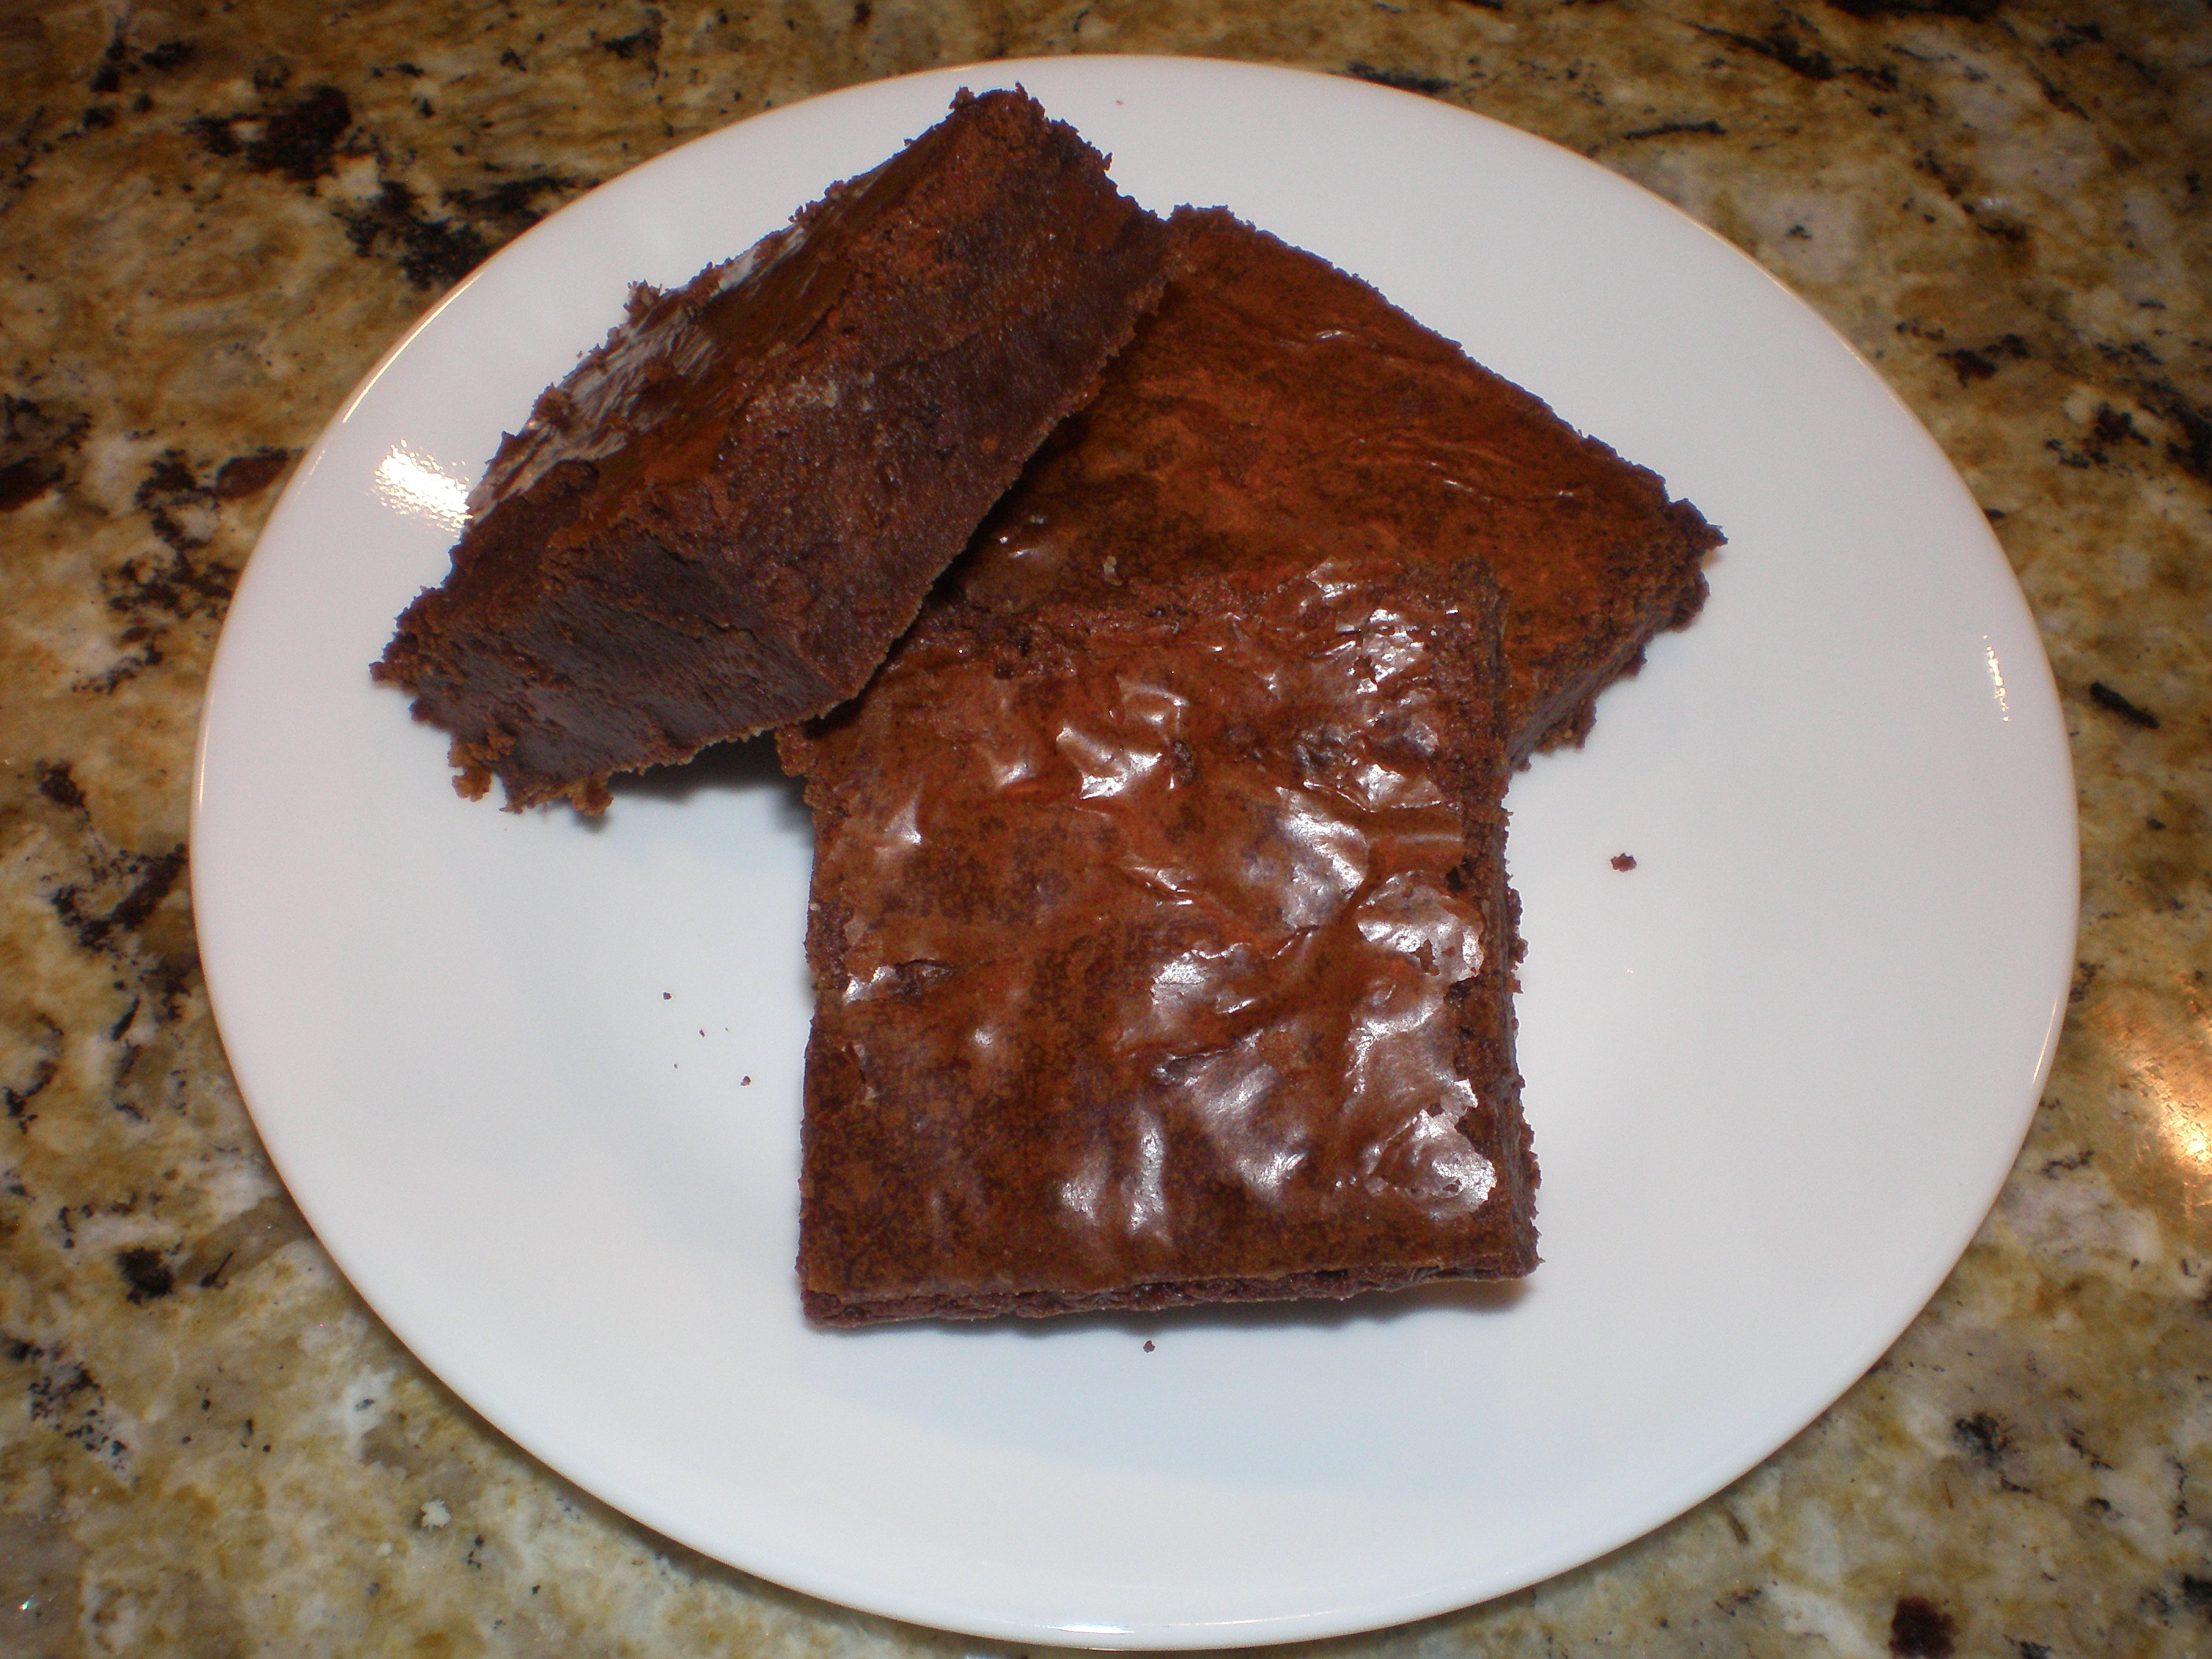 outrageous brownies outrageous brownies recipe outrageous brownies ...